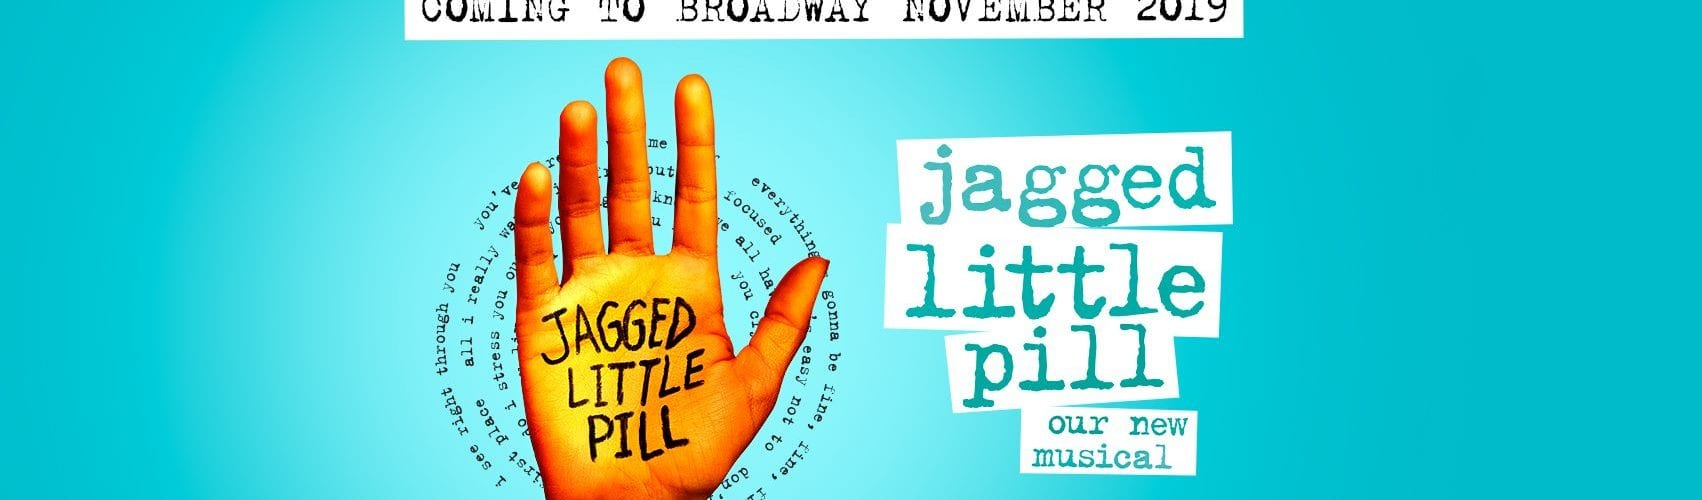 Alanis Morissette's 'Jagged Little Pill' Musical To Hit Broadway This Fall